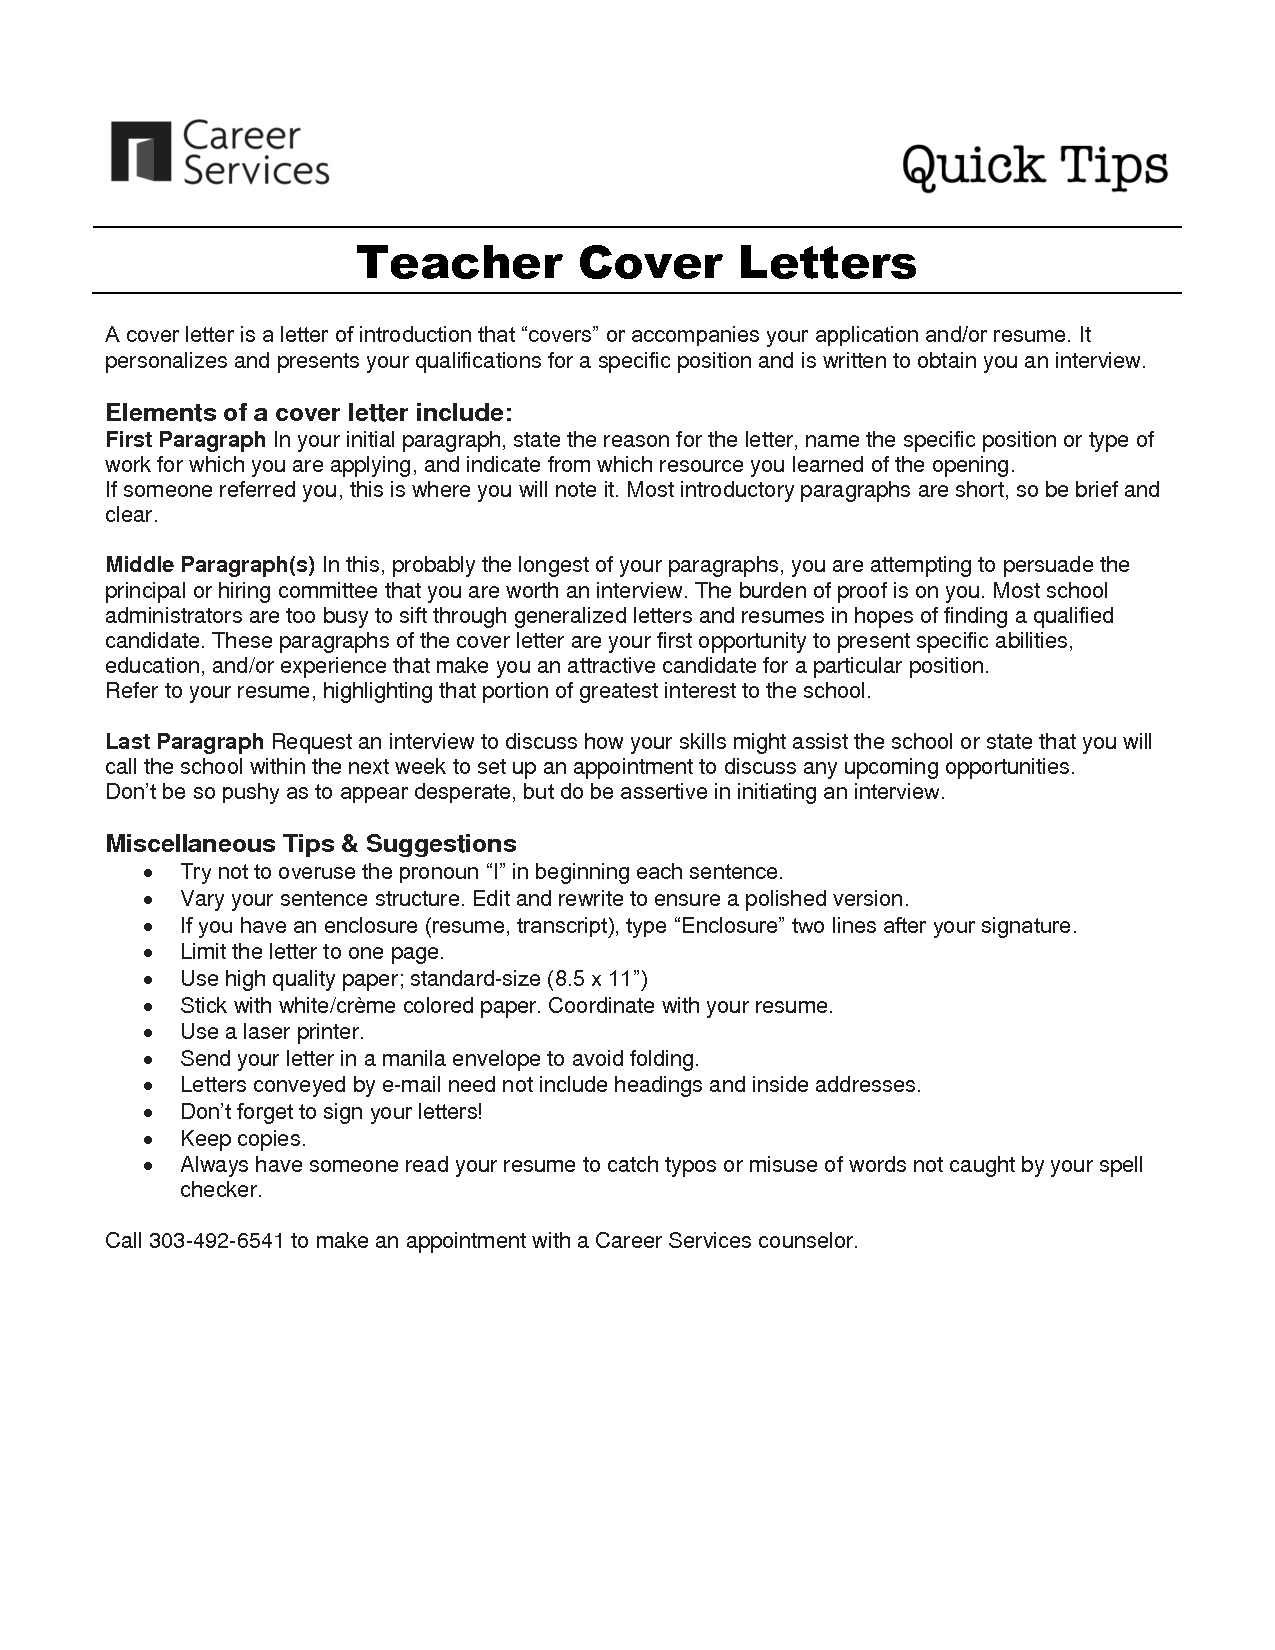 Pin by Danielle McNichol on Jobs | Cover letter teacher ...